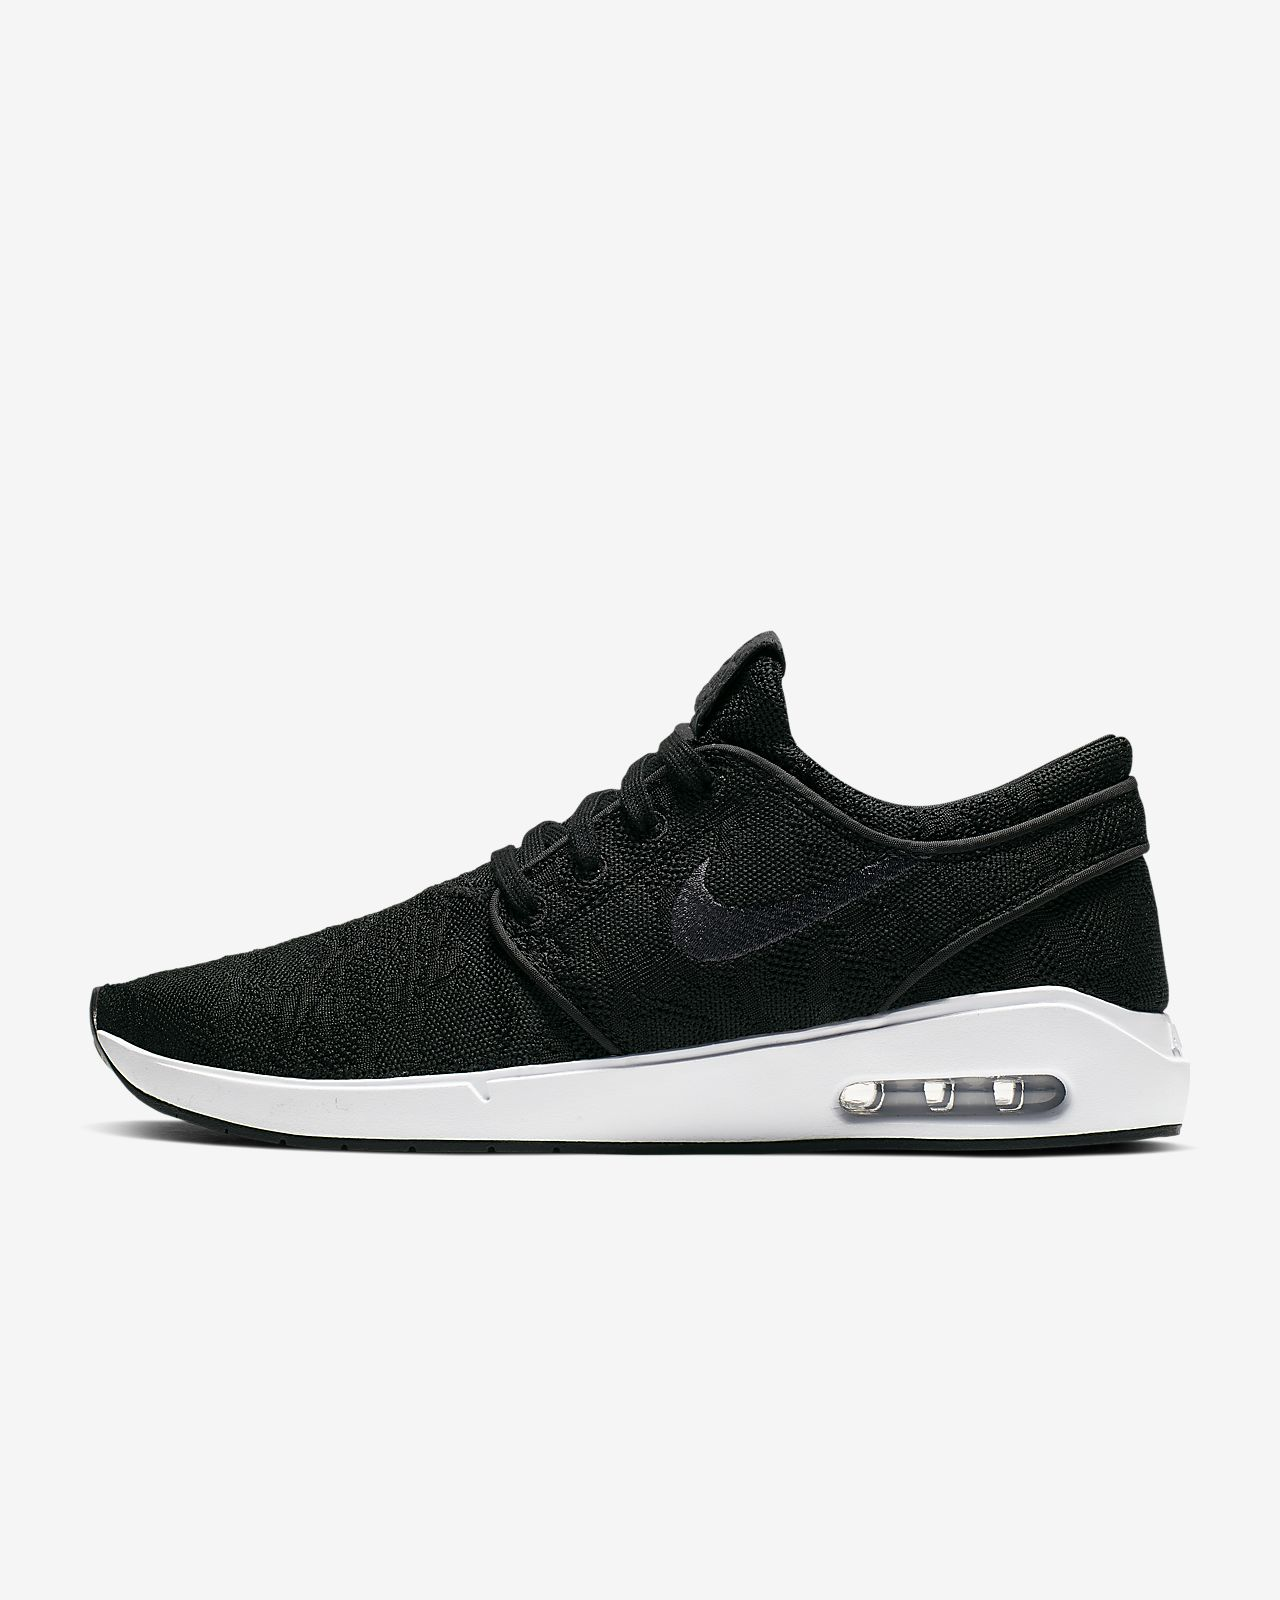 online retailer 22fee 98be9 ... Chaussure de skateboard Nike SB Air Max Janoski 2 pour Homme